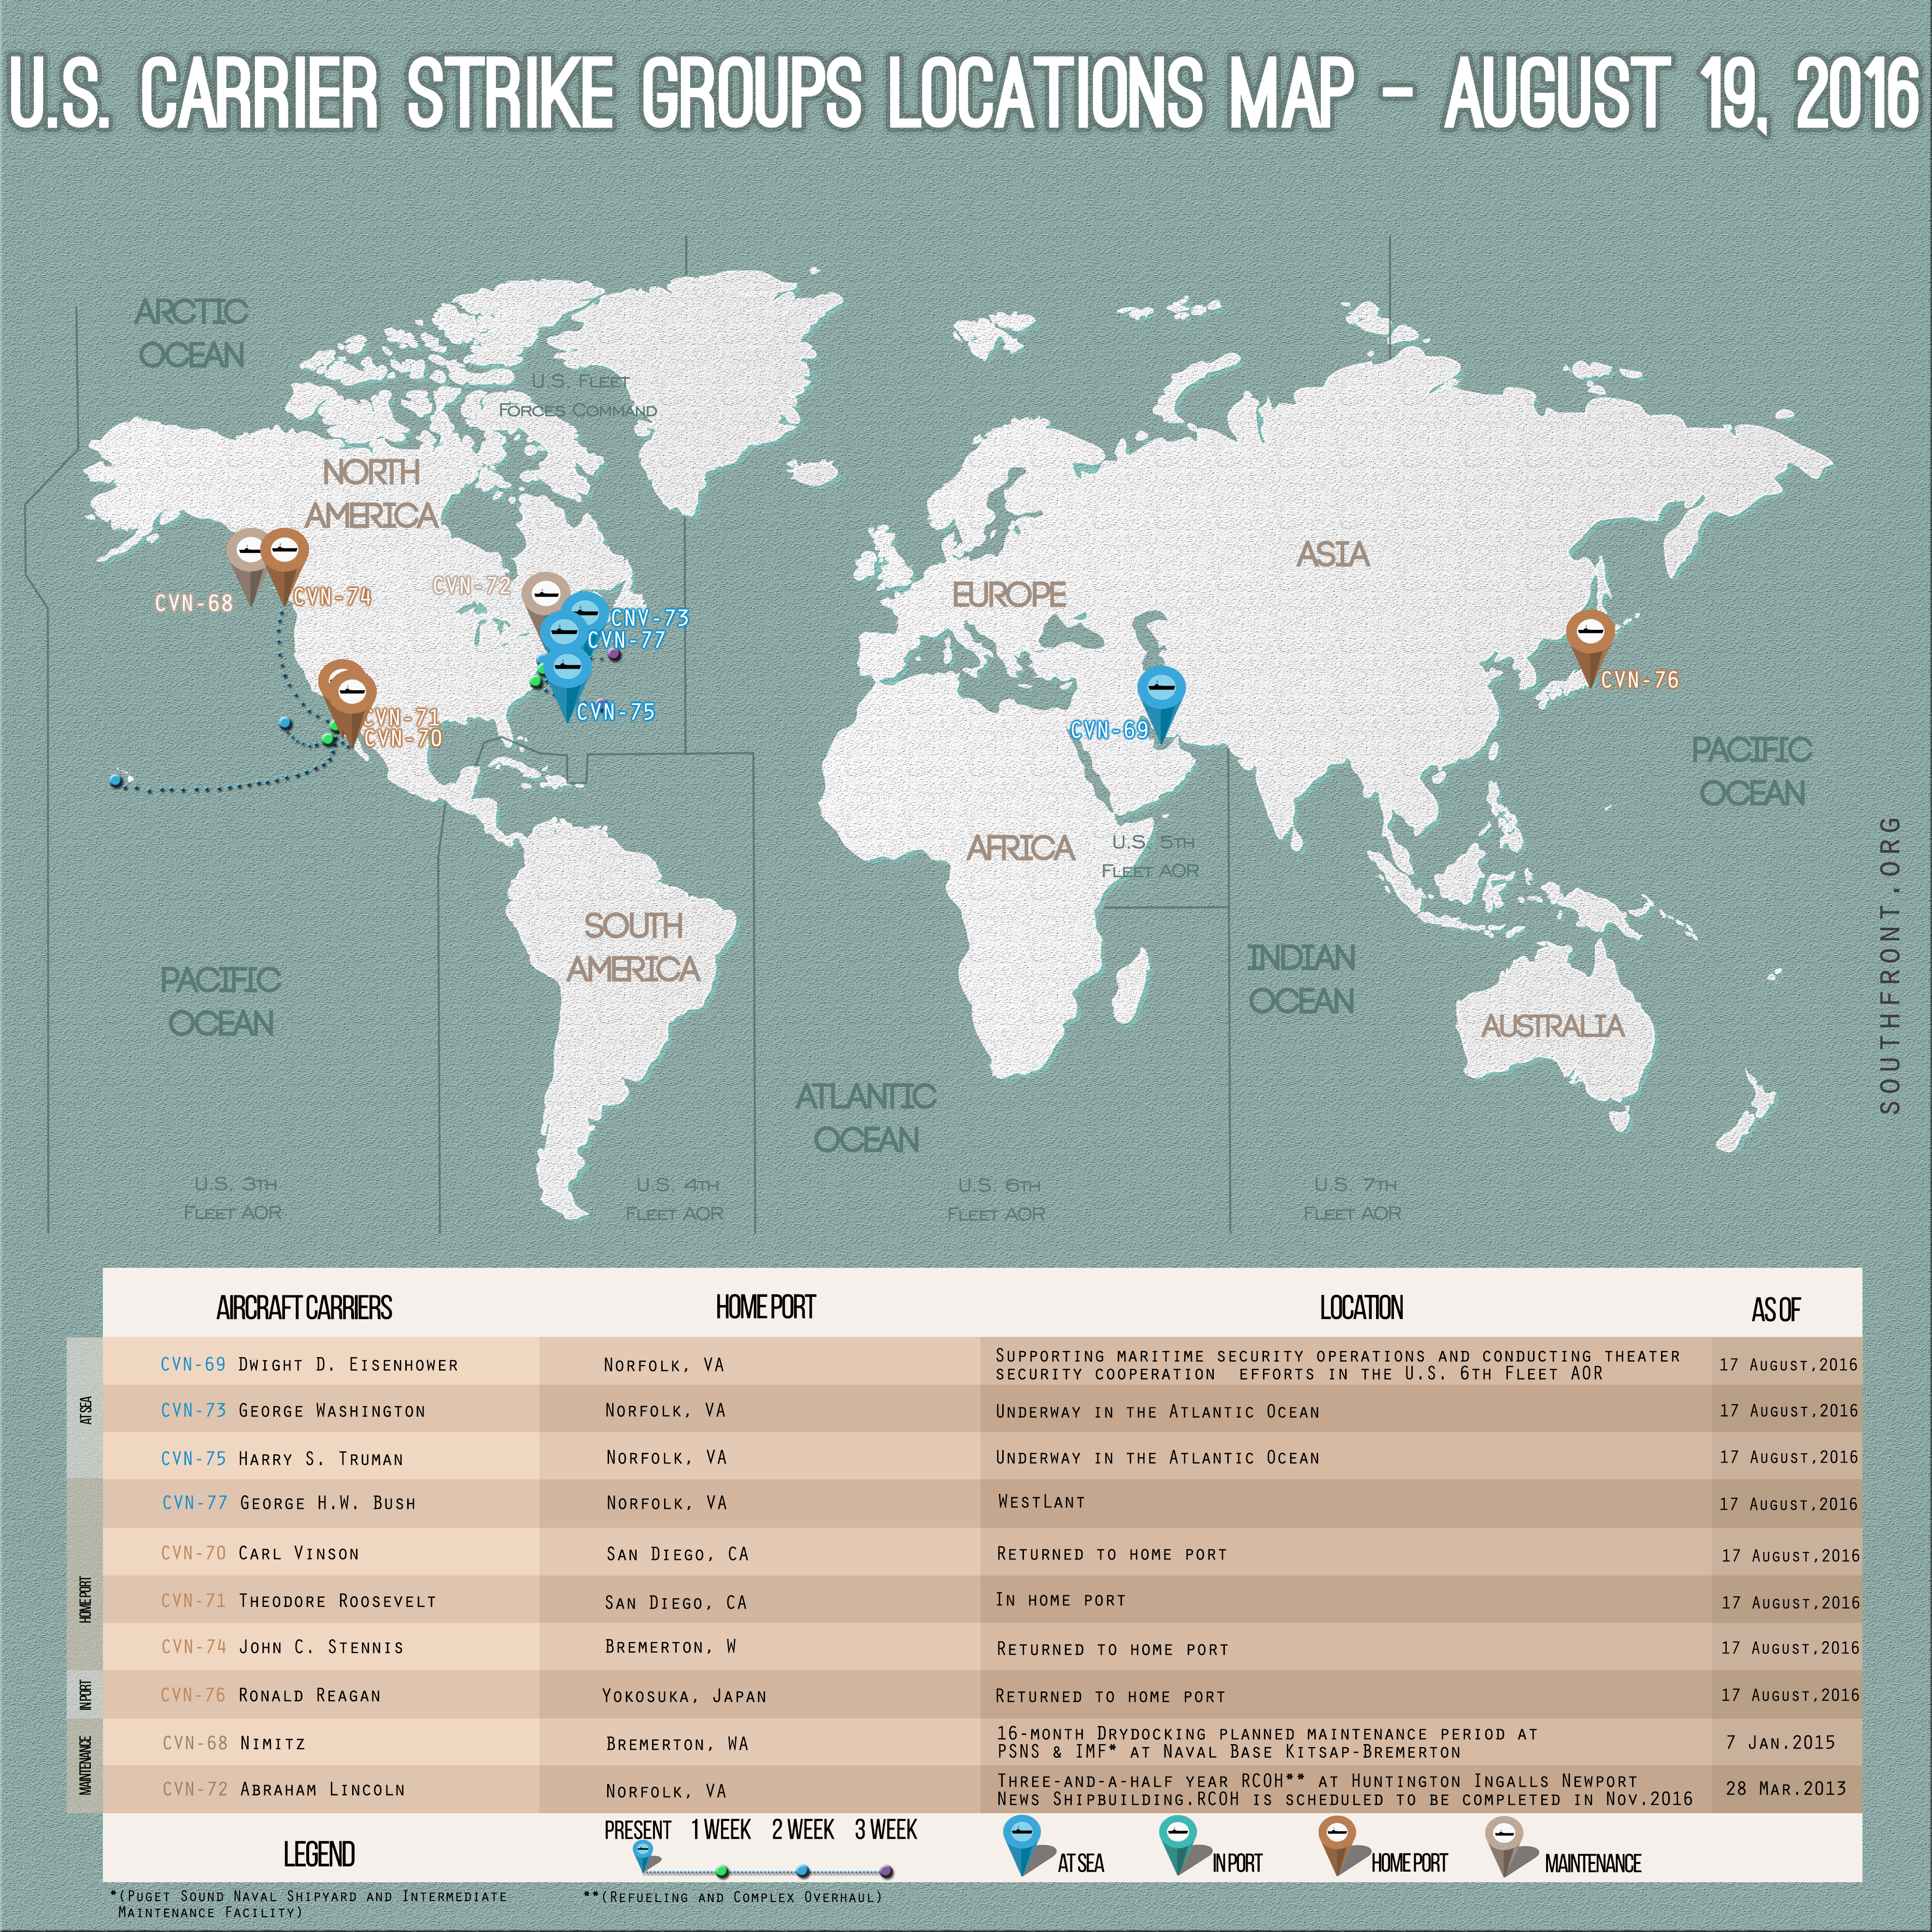 US Carrier Strike Groups Locations Map – August 19, 2016